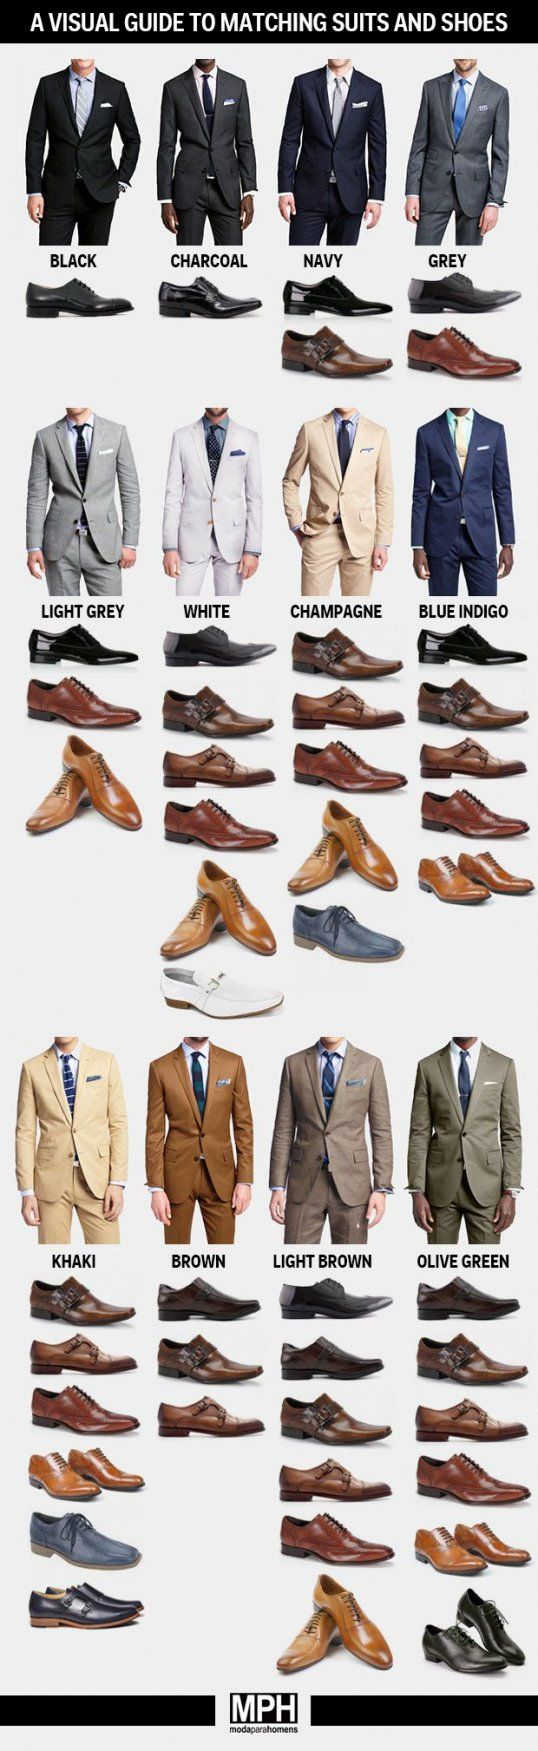 Your guide to matching the right suit with shoes. #Menswear #HighFashion #DressToImpress